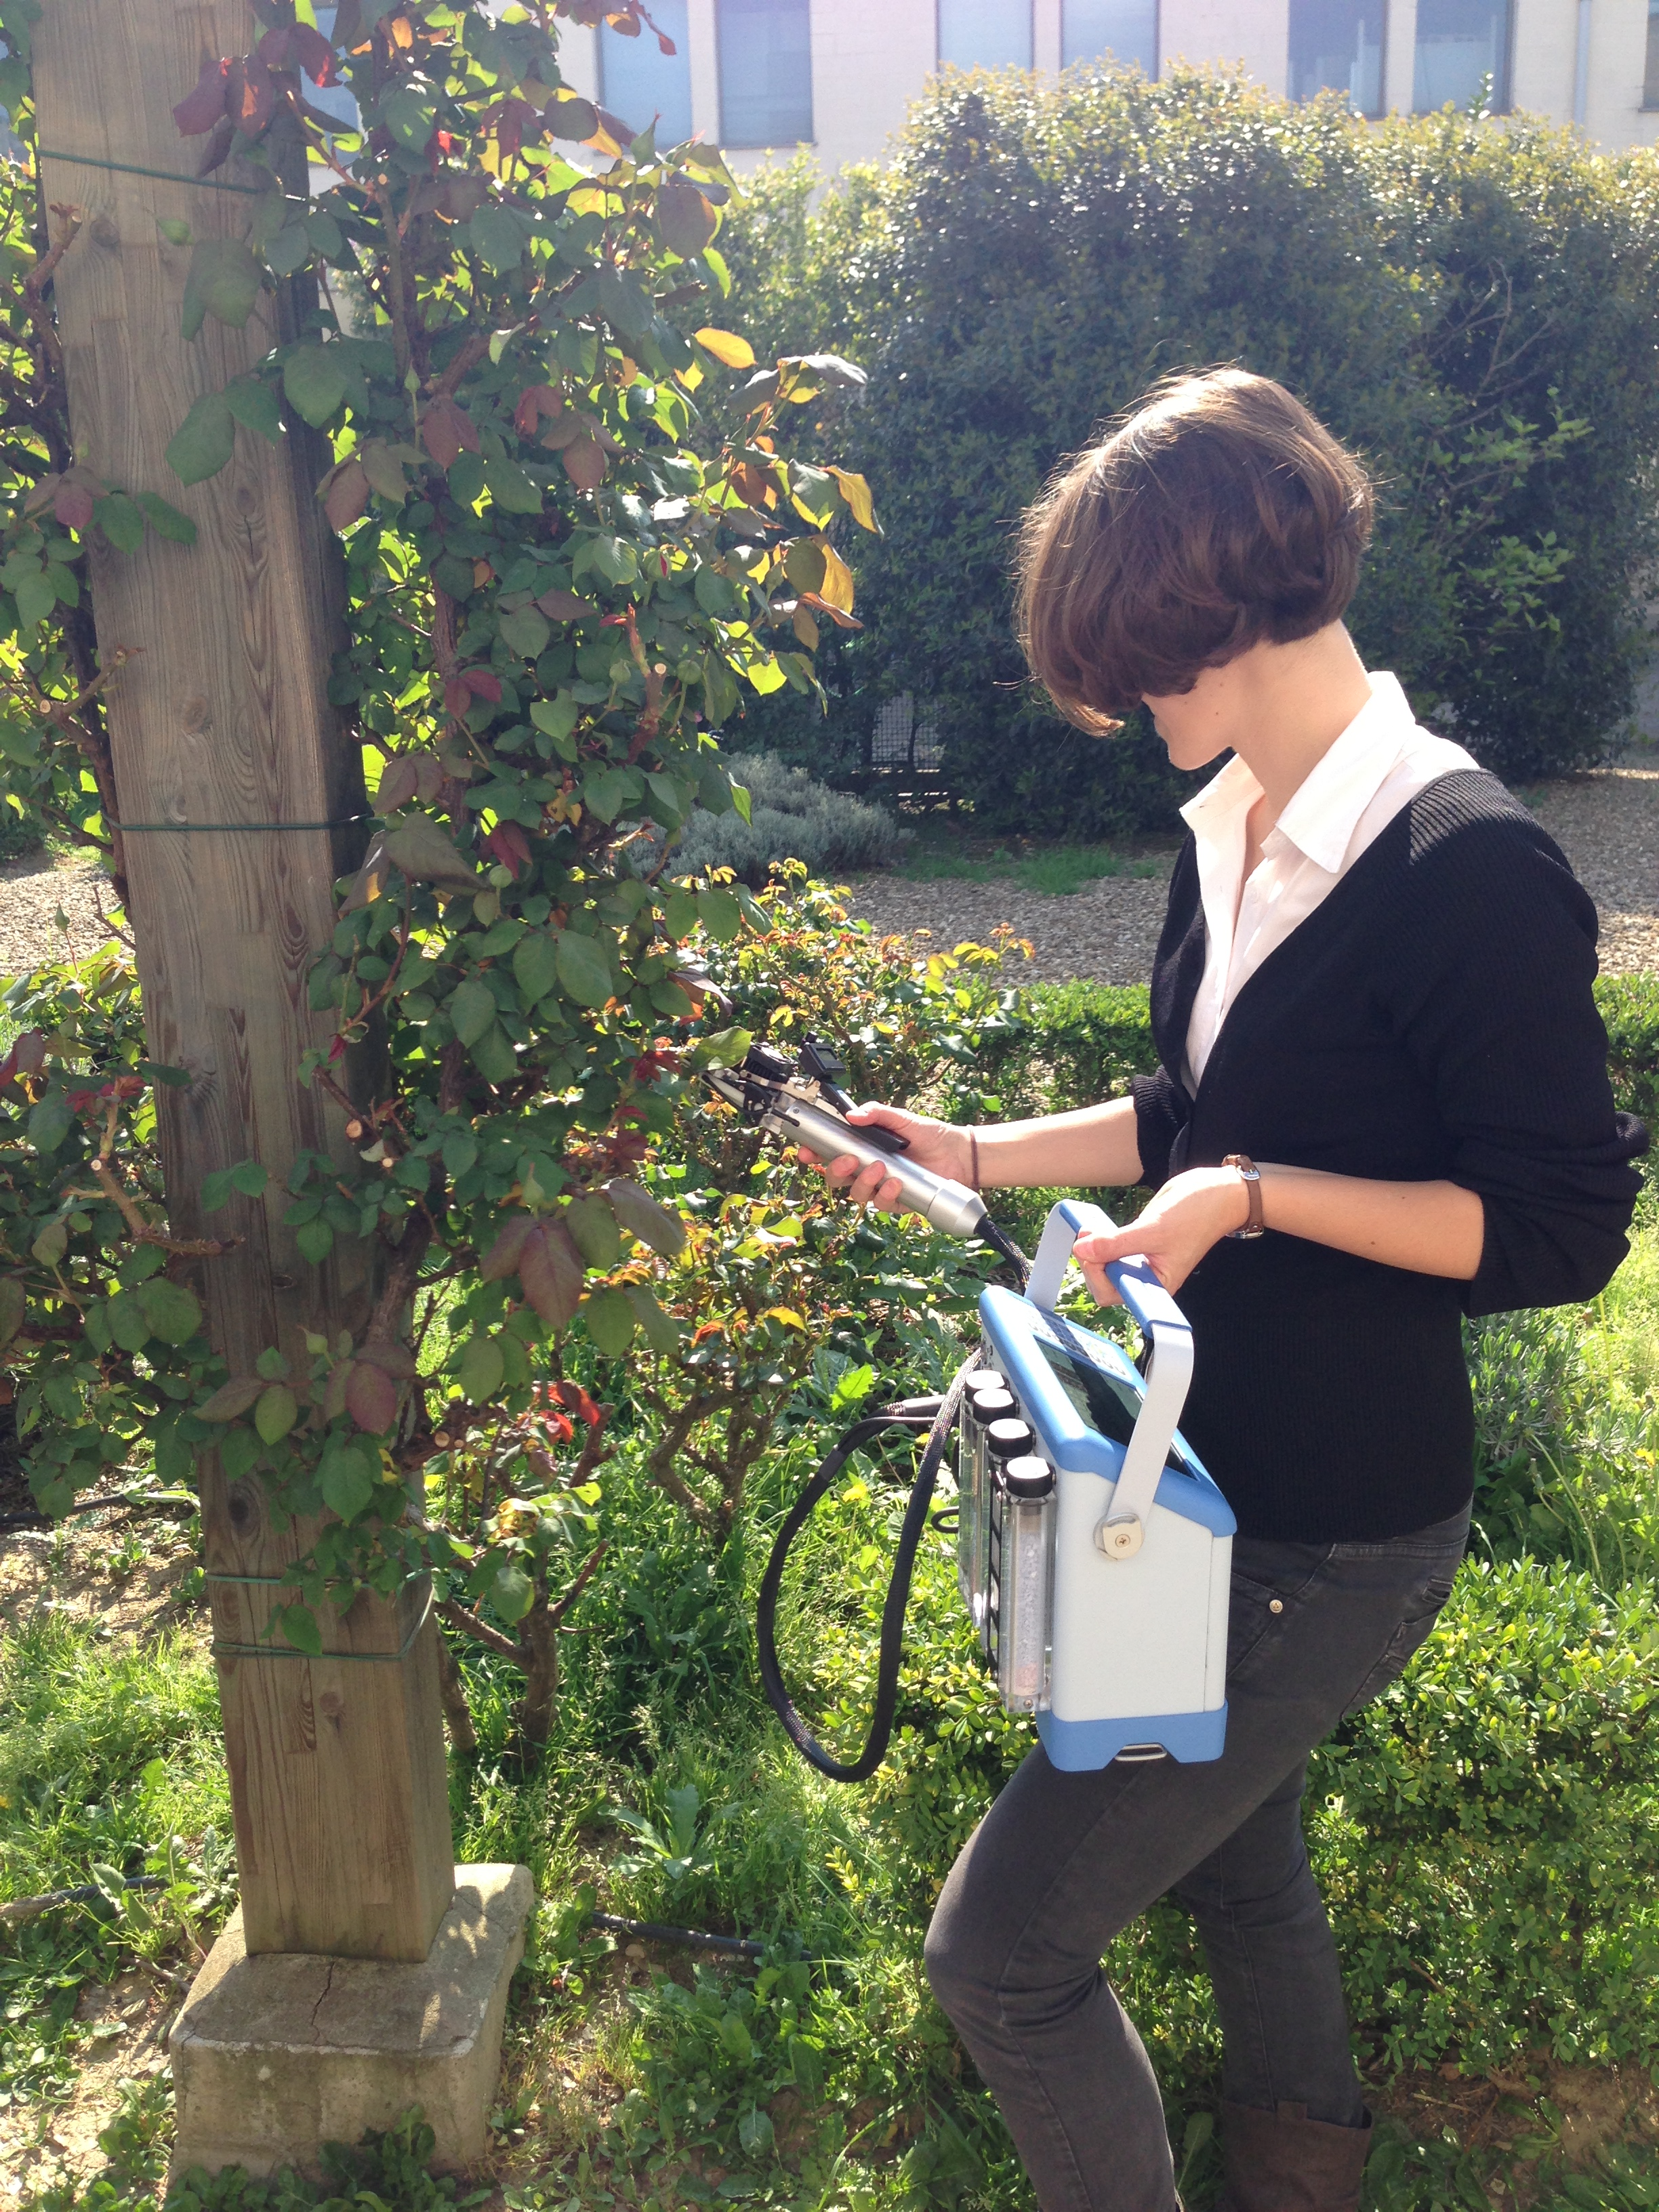 Measurement of photosynthesis in the field with the CIRAS-3 Portable Photosynthesis System